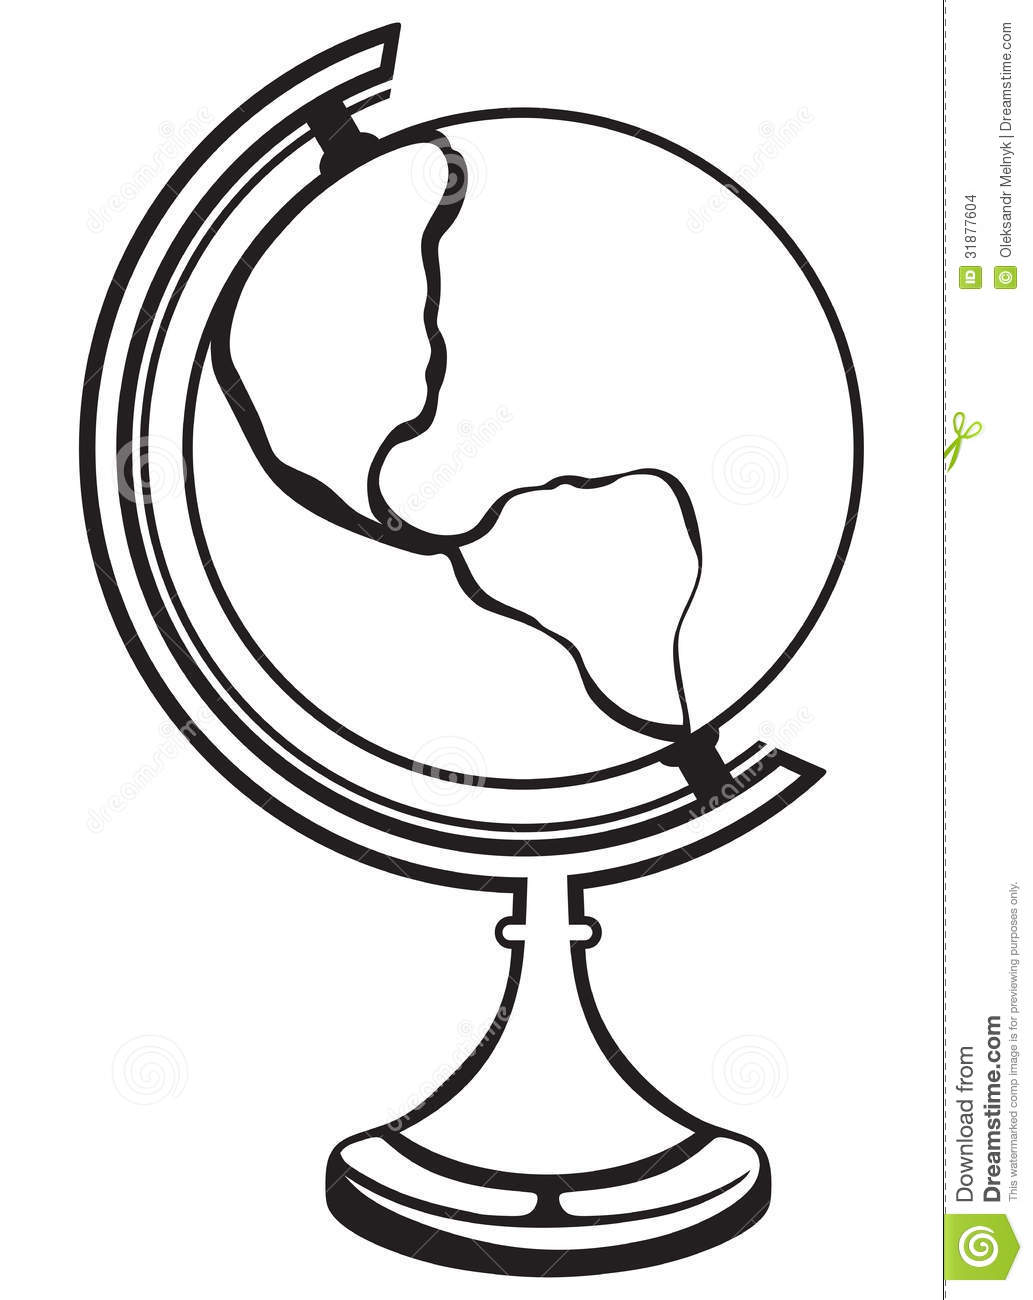 1033x1300 Globe Black And White Outline Clipart Panda